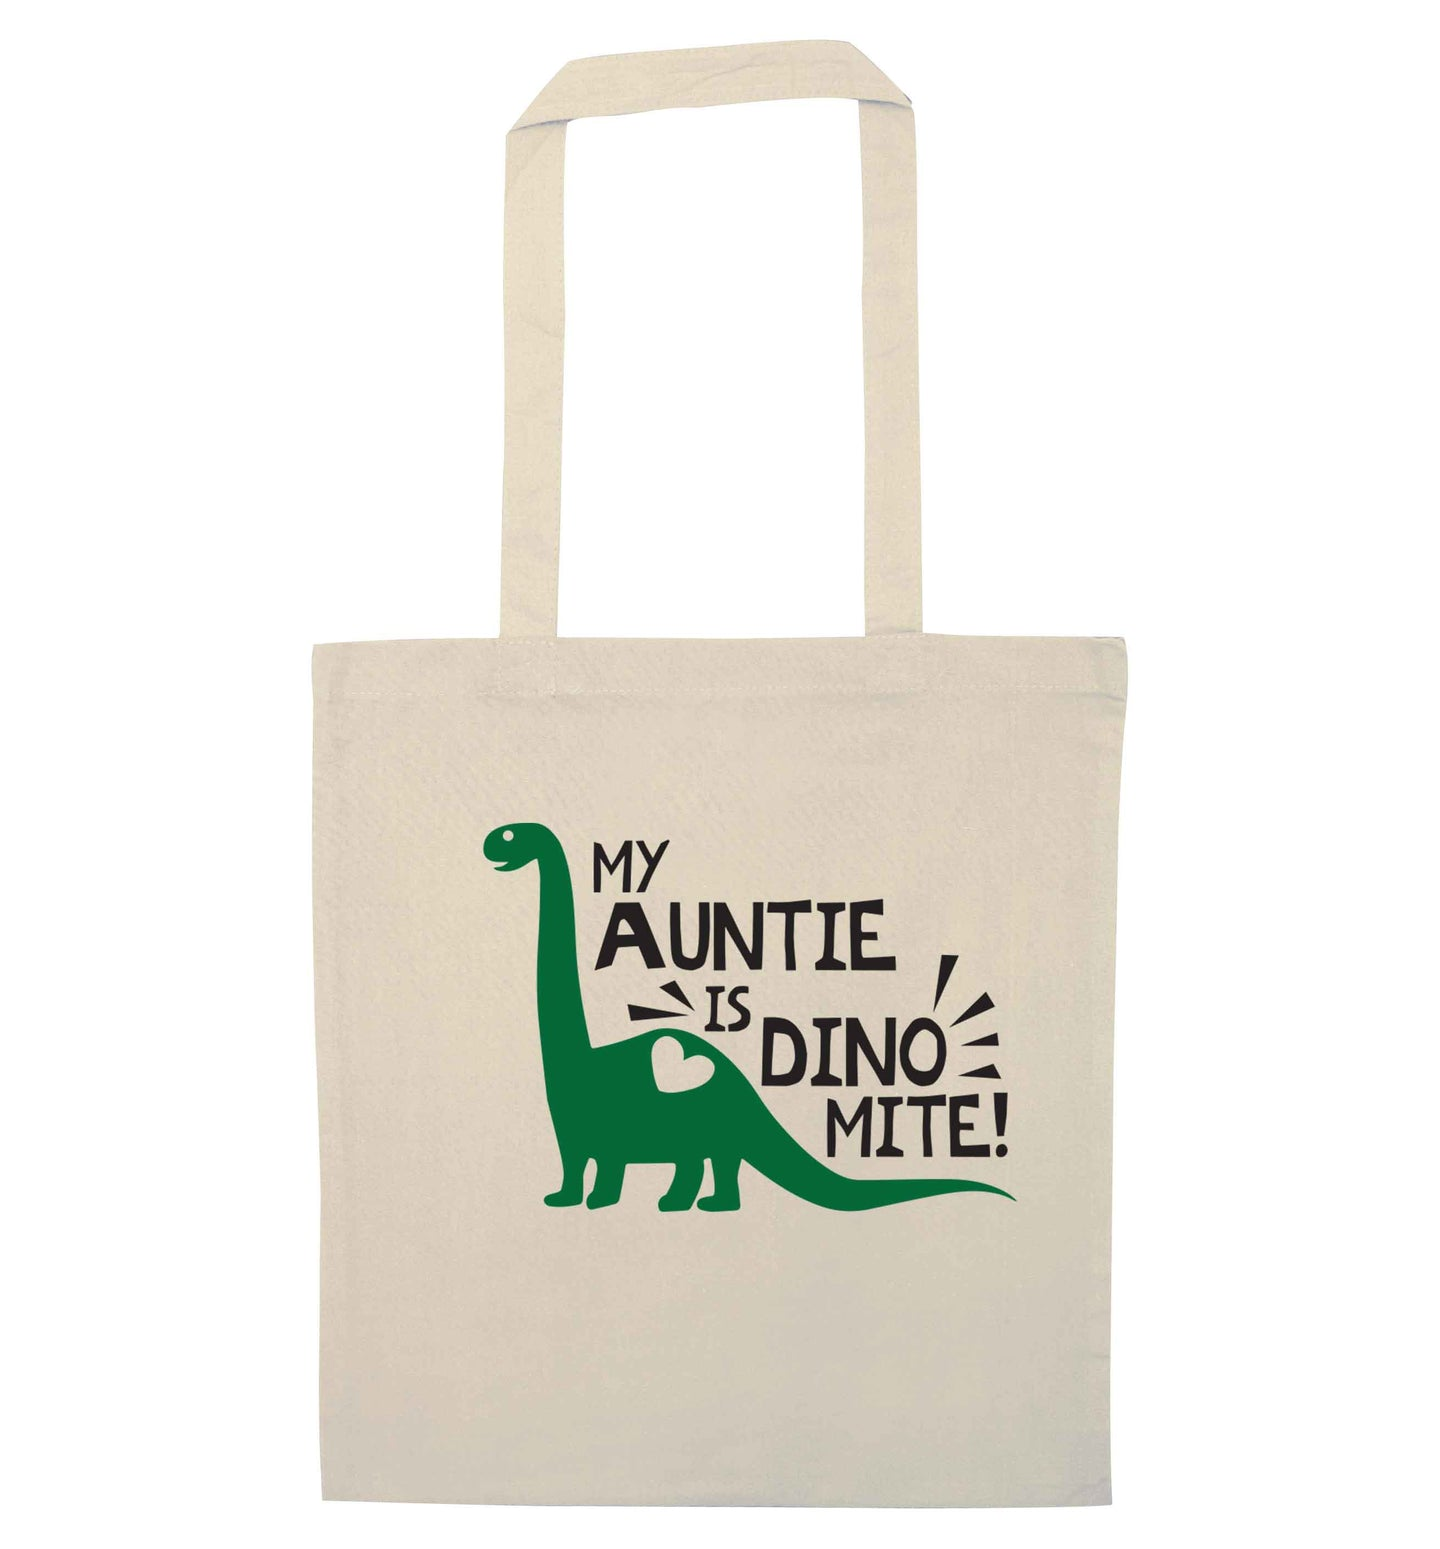 My auntie is dinomite! natural tote bag